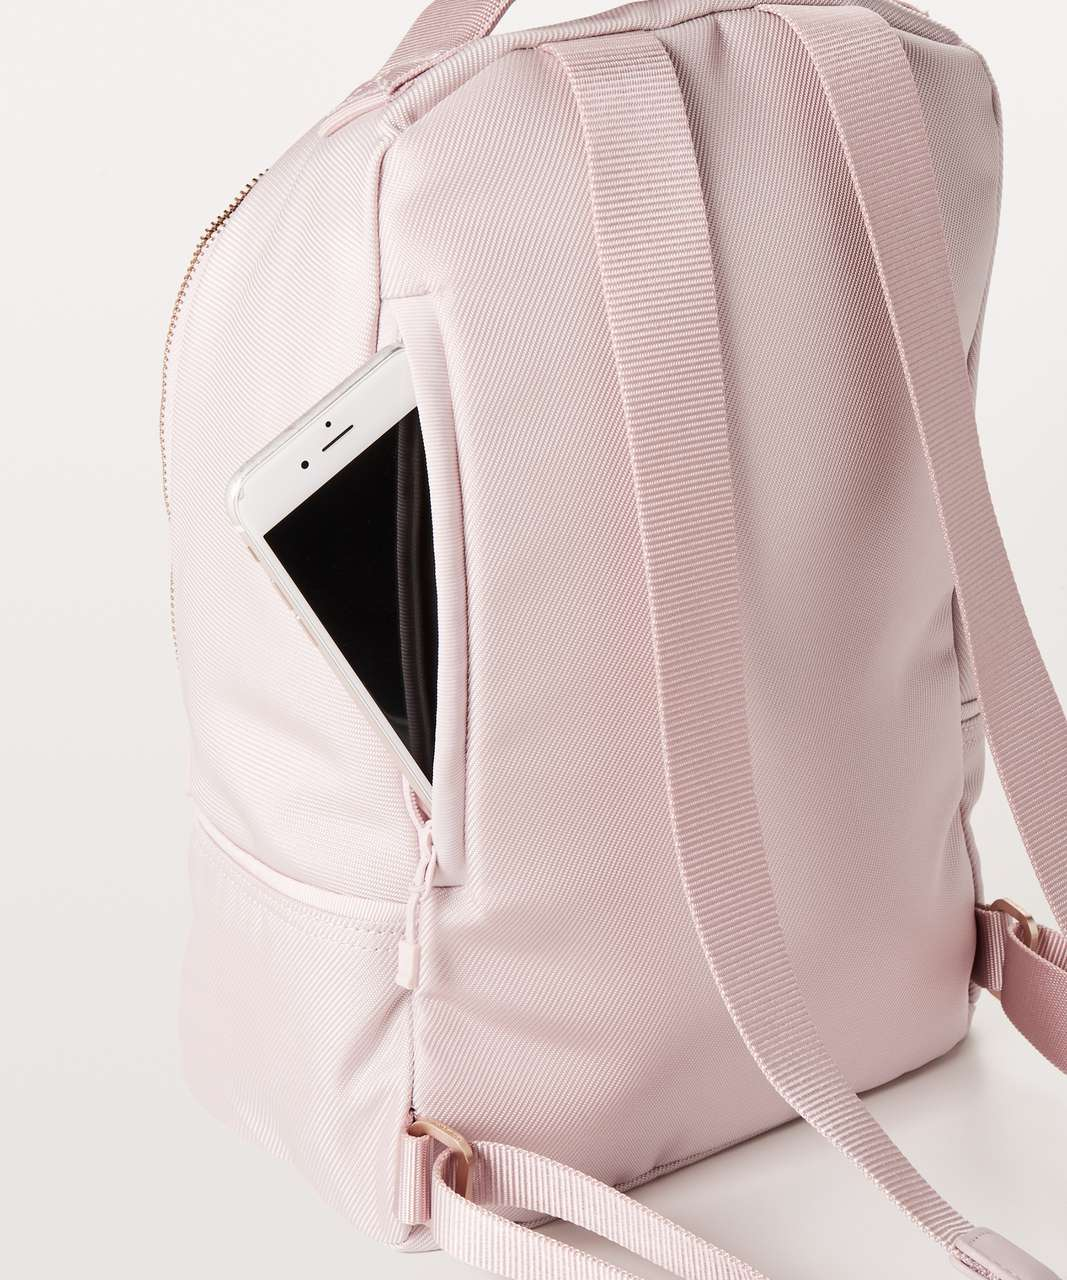 Lululemon City Adventurer Utility Pack 12L - Misty Pink